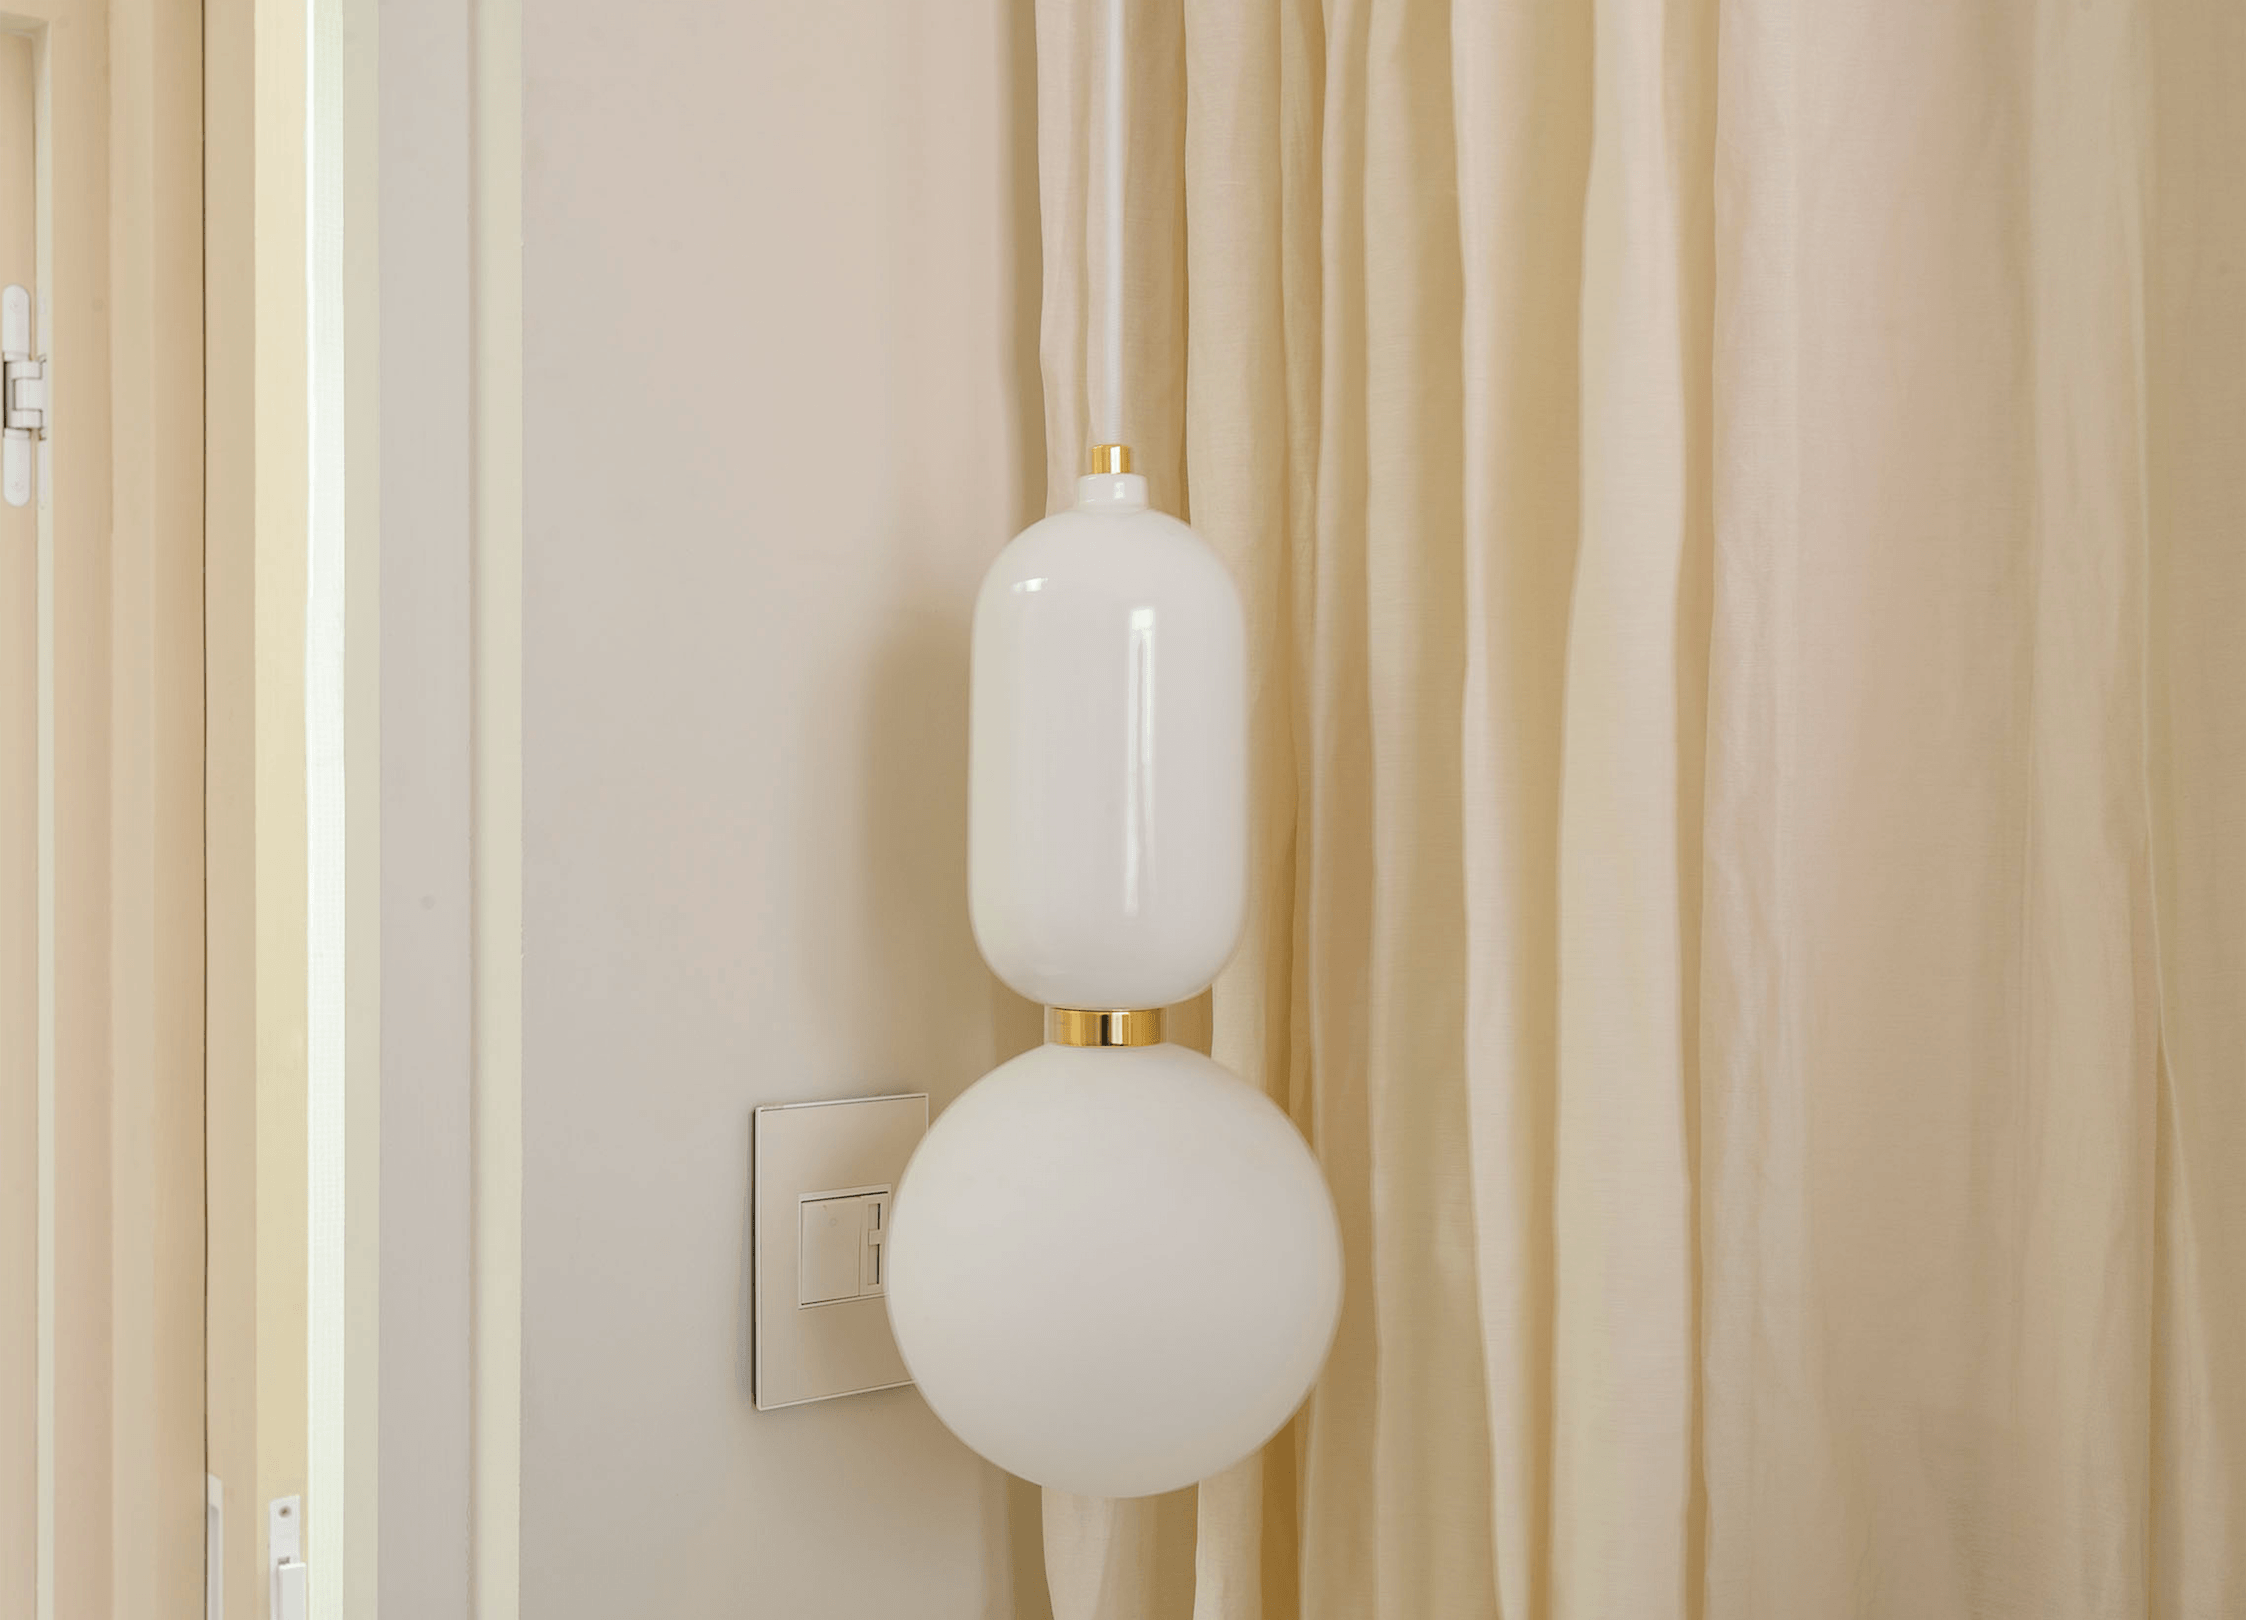 Custom-painted European-style switches and an opaque globe pendant are among the owner&#8